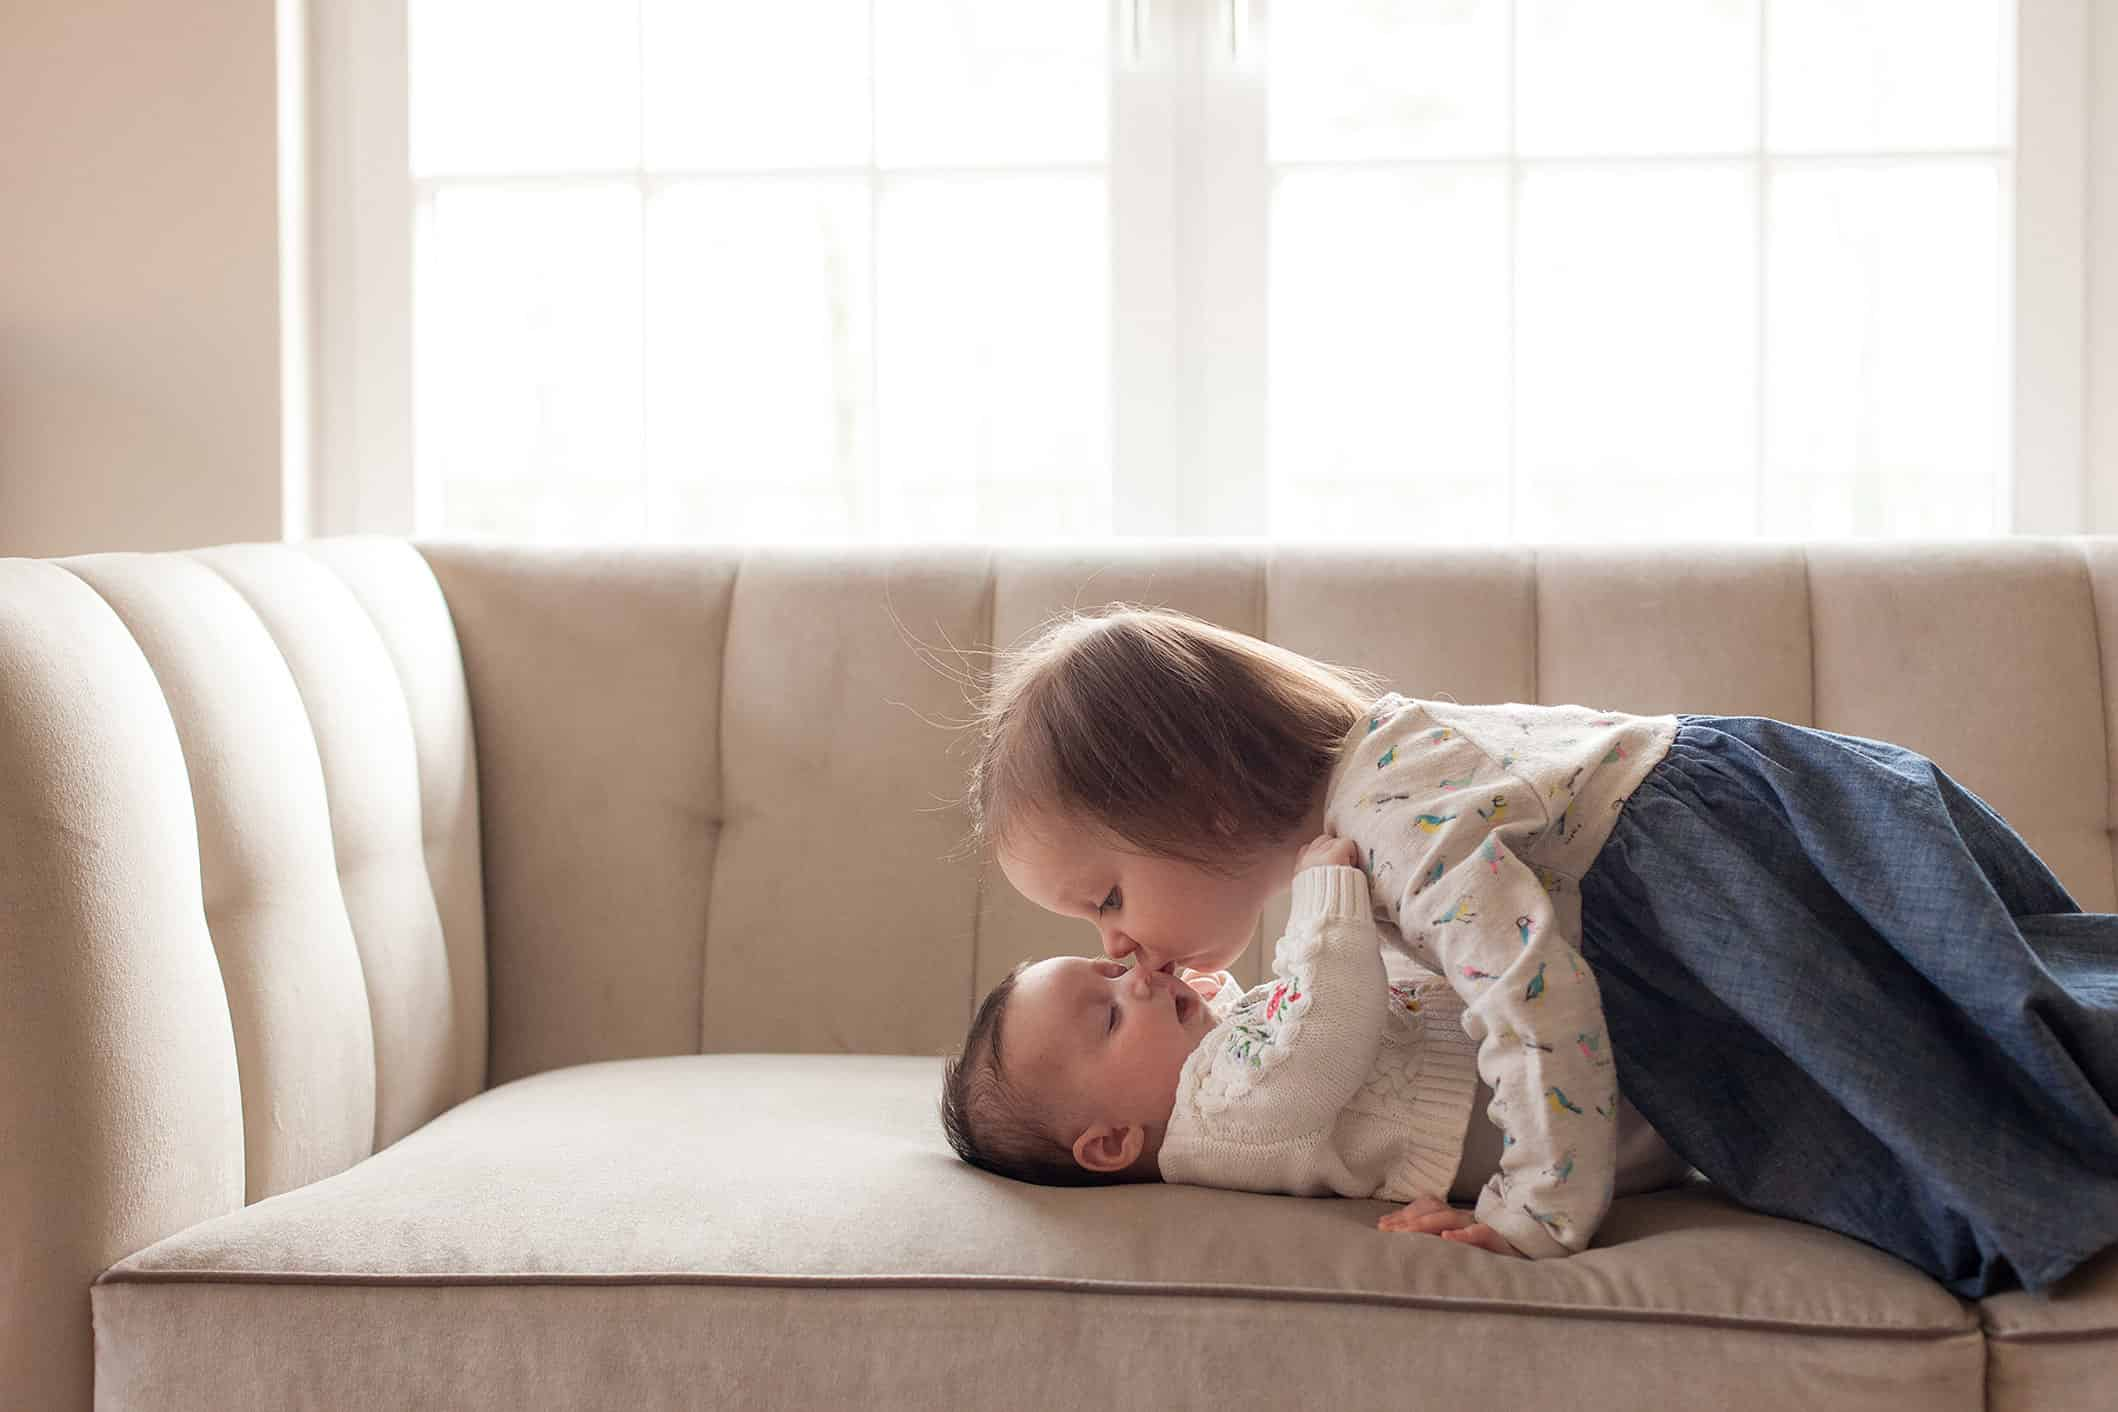 Newborn photos at home. Sister is kissing her baby sister.